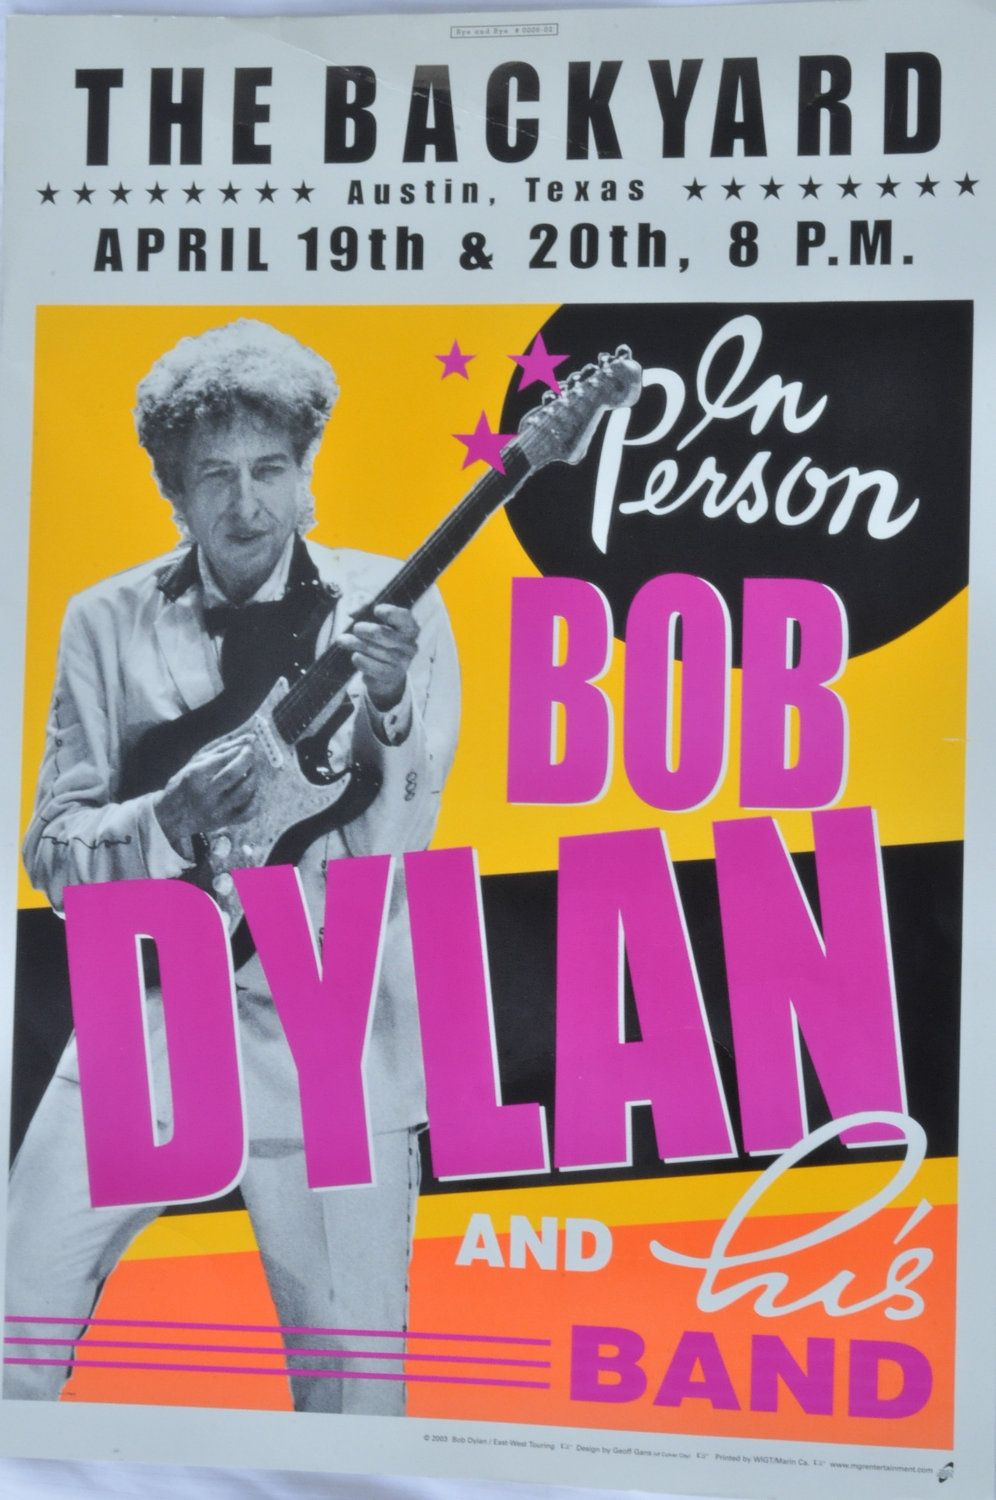 bob dylan at the backyard austin texas poster for reuse art